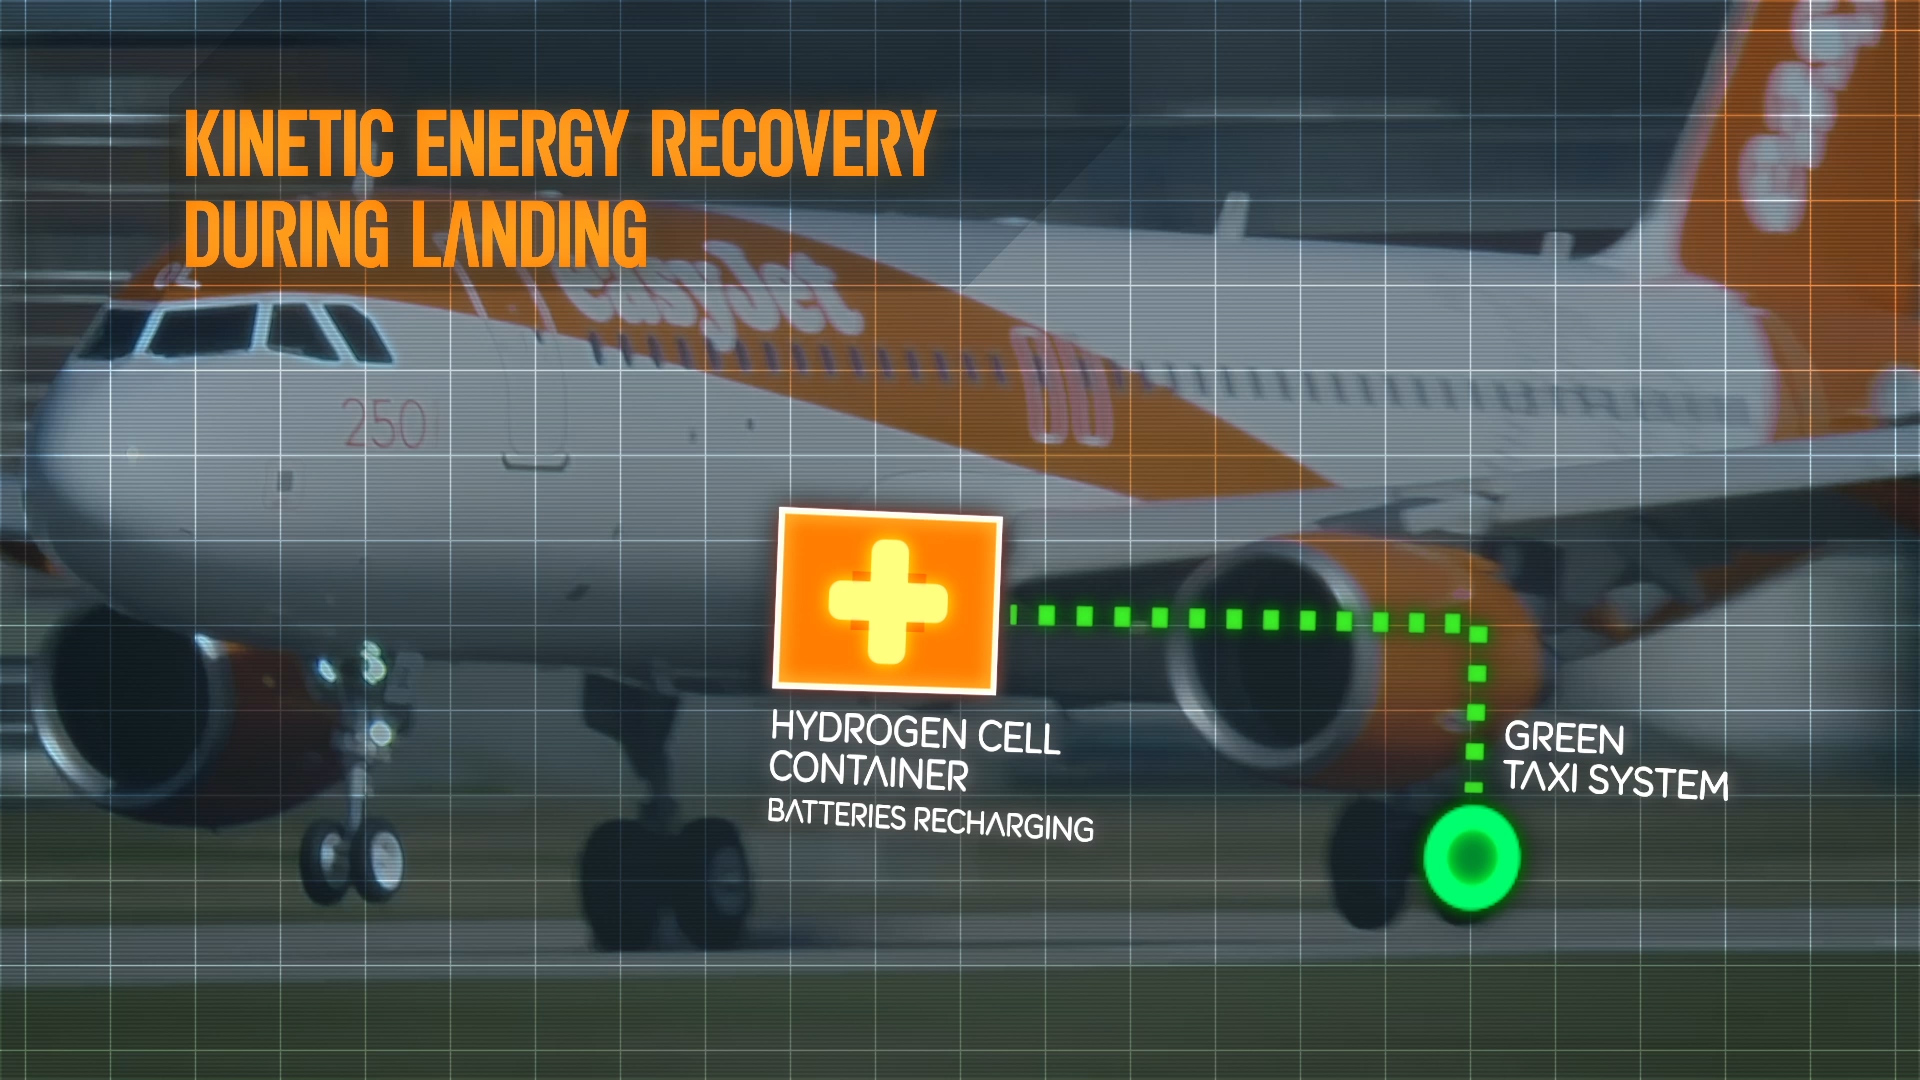 Graphic provided by EasyJet